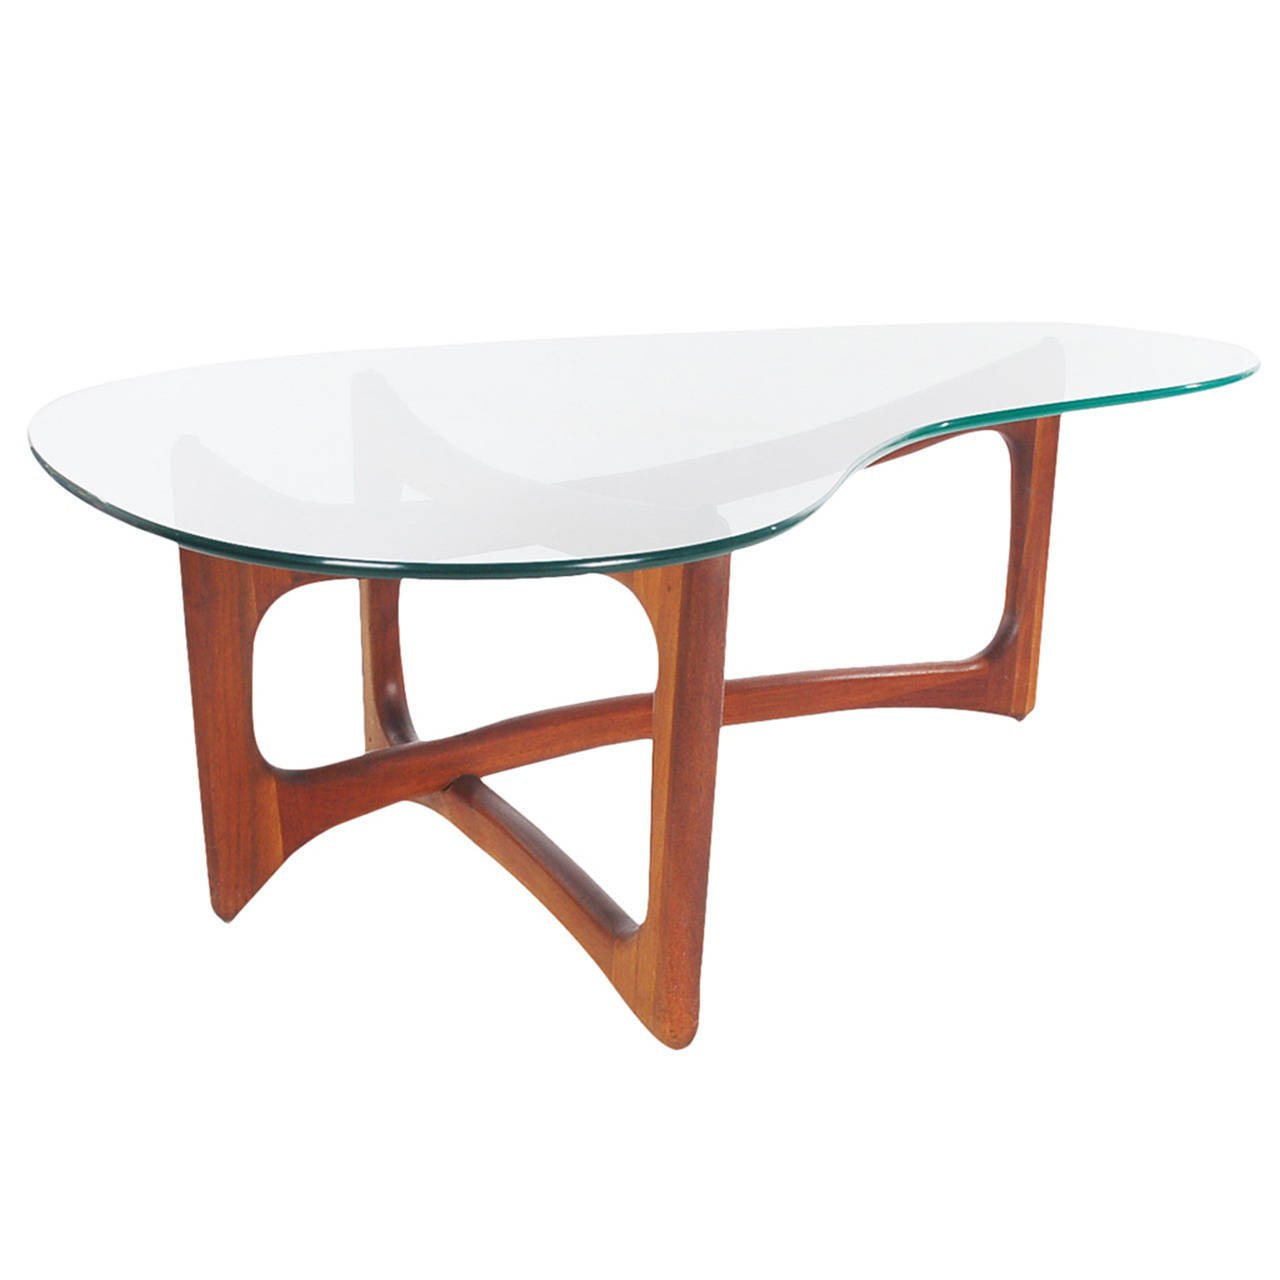 kidney shaped table home interior design trends accent mid century modern walnut and glass coffee tables for west elm floor mirror average side height small couches rooms bunnings